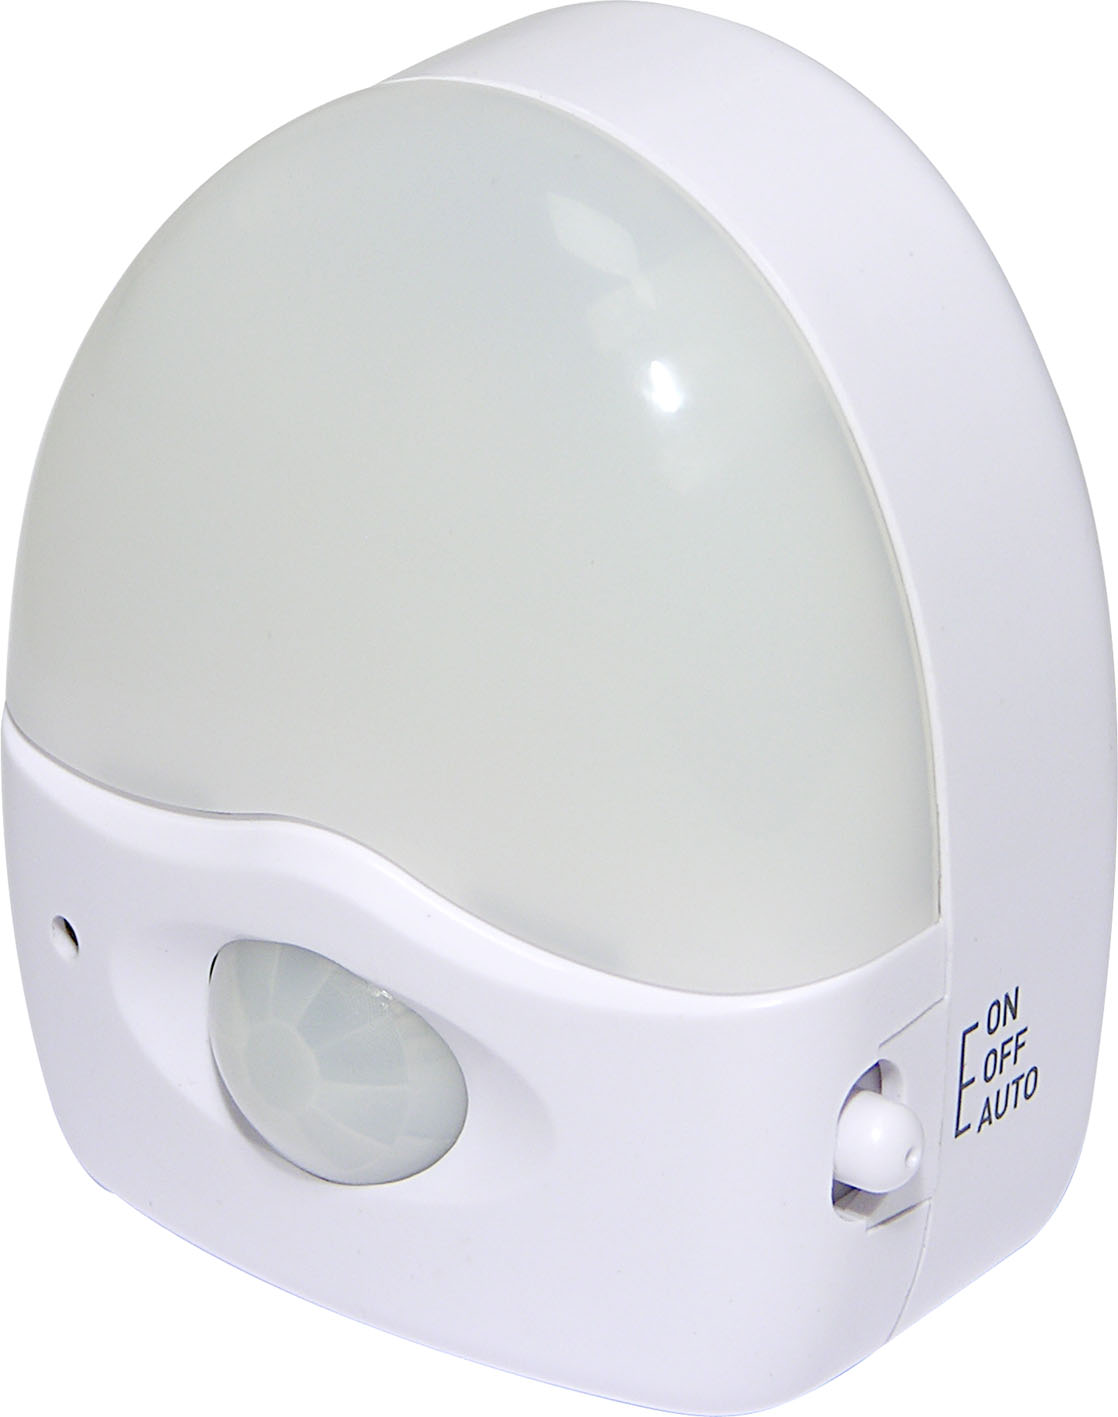 Led Night Security Light Bwl 230 Olympia Business Systems Download